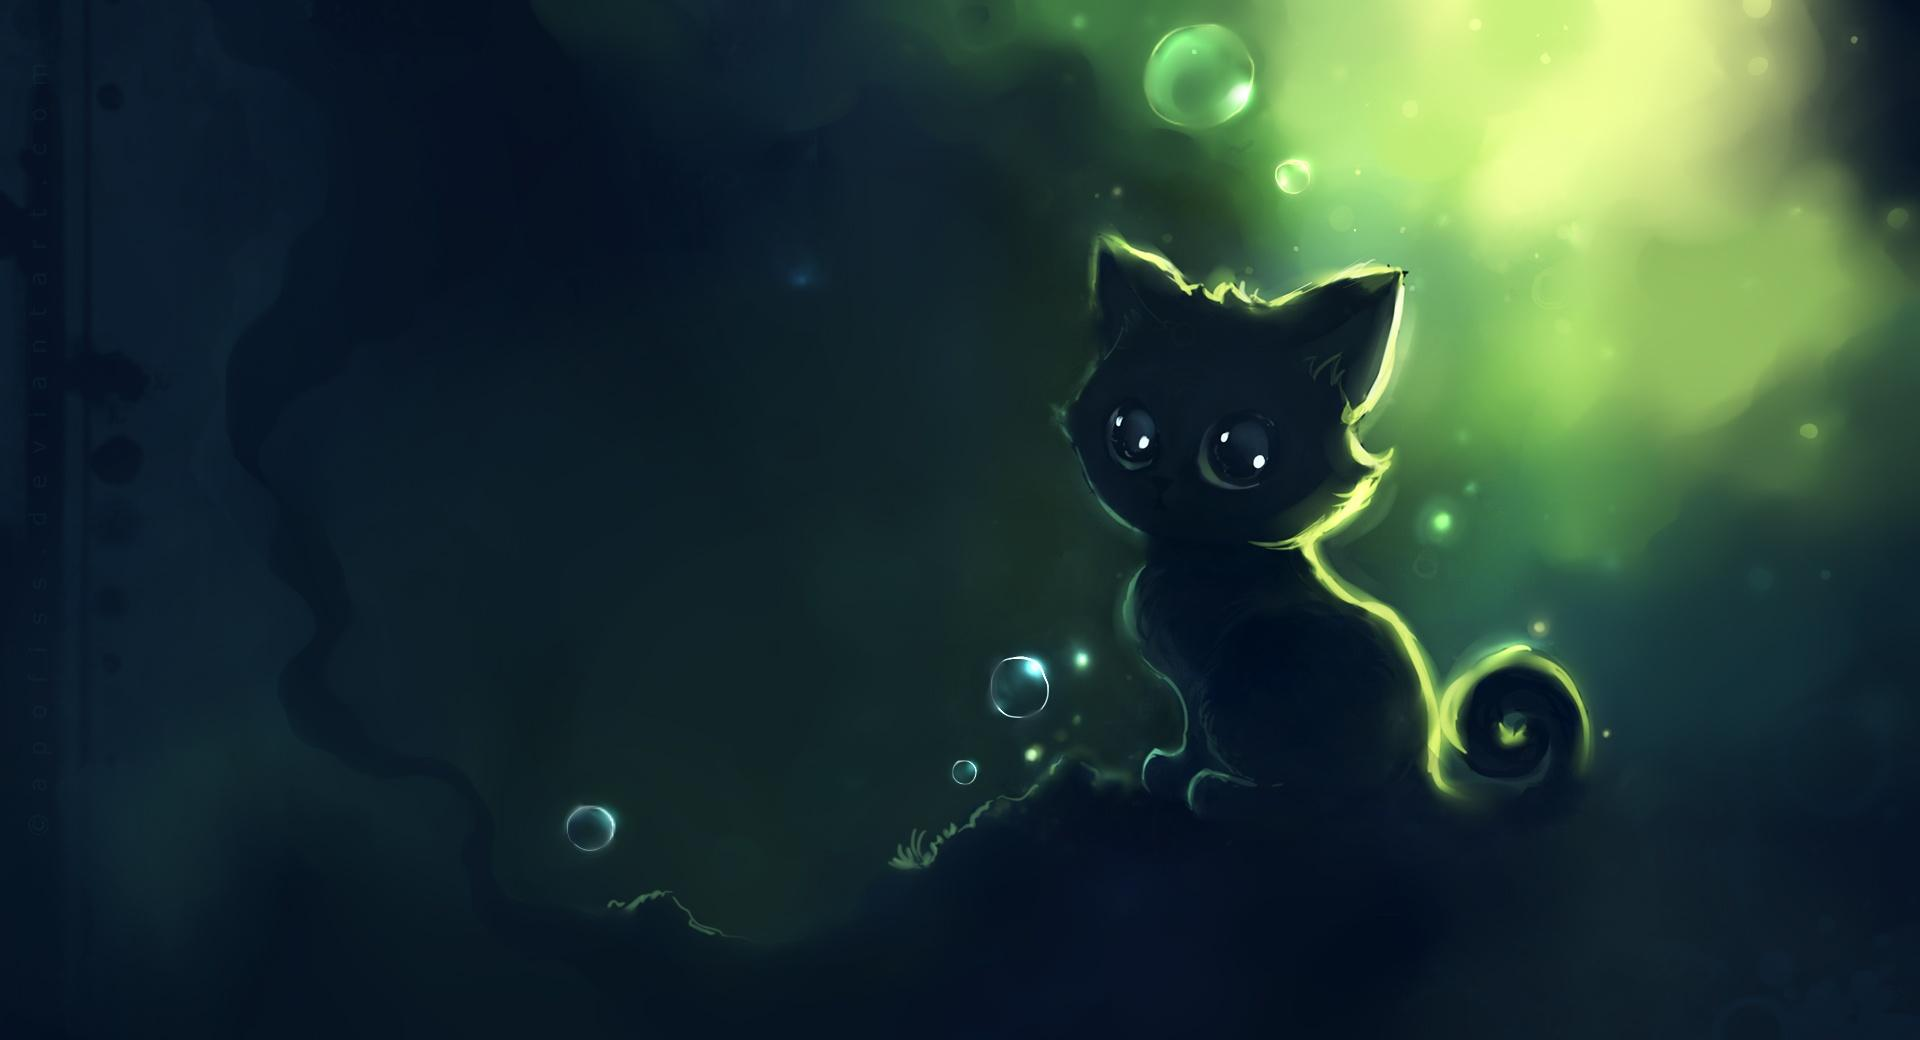 Lonely Black Kitty Painting wallpapers HD quality